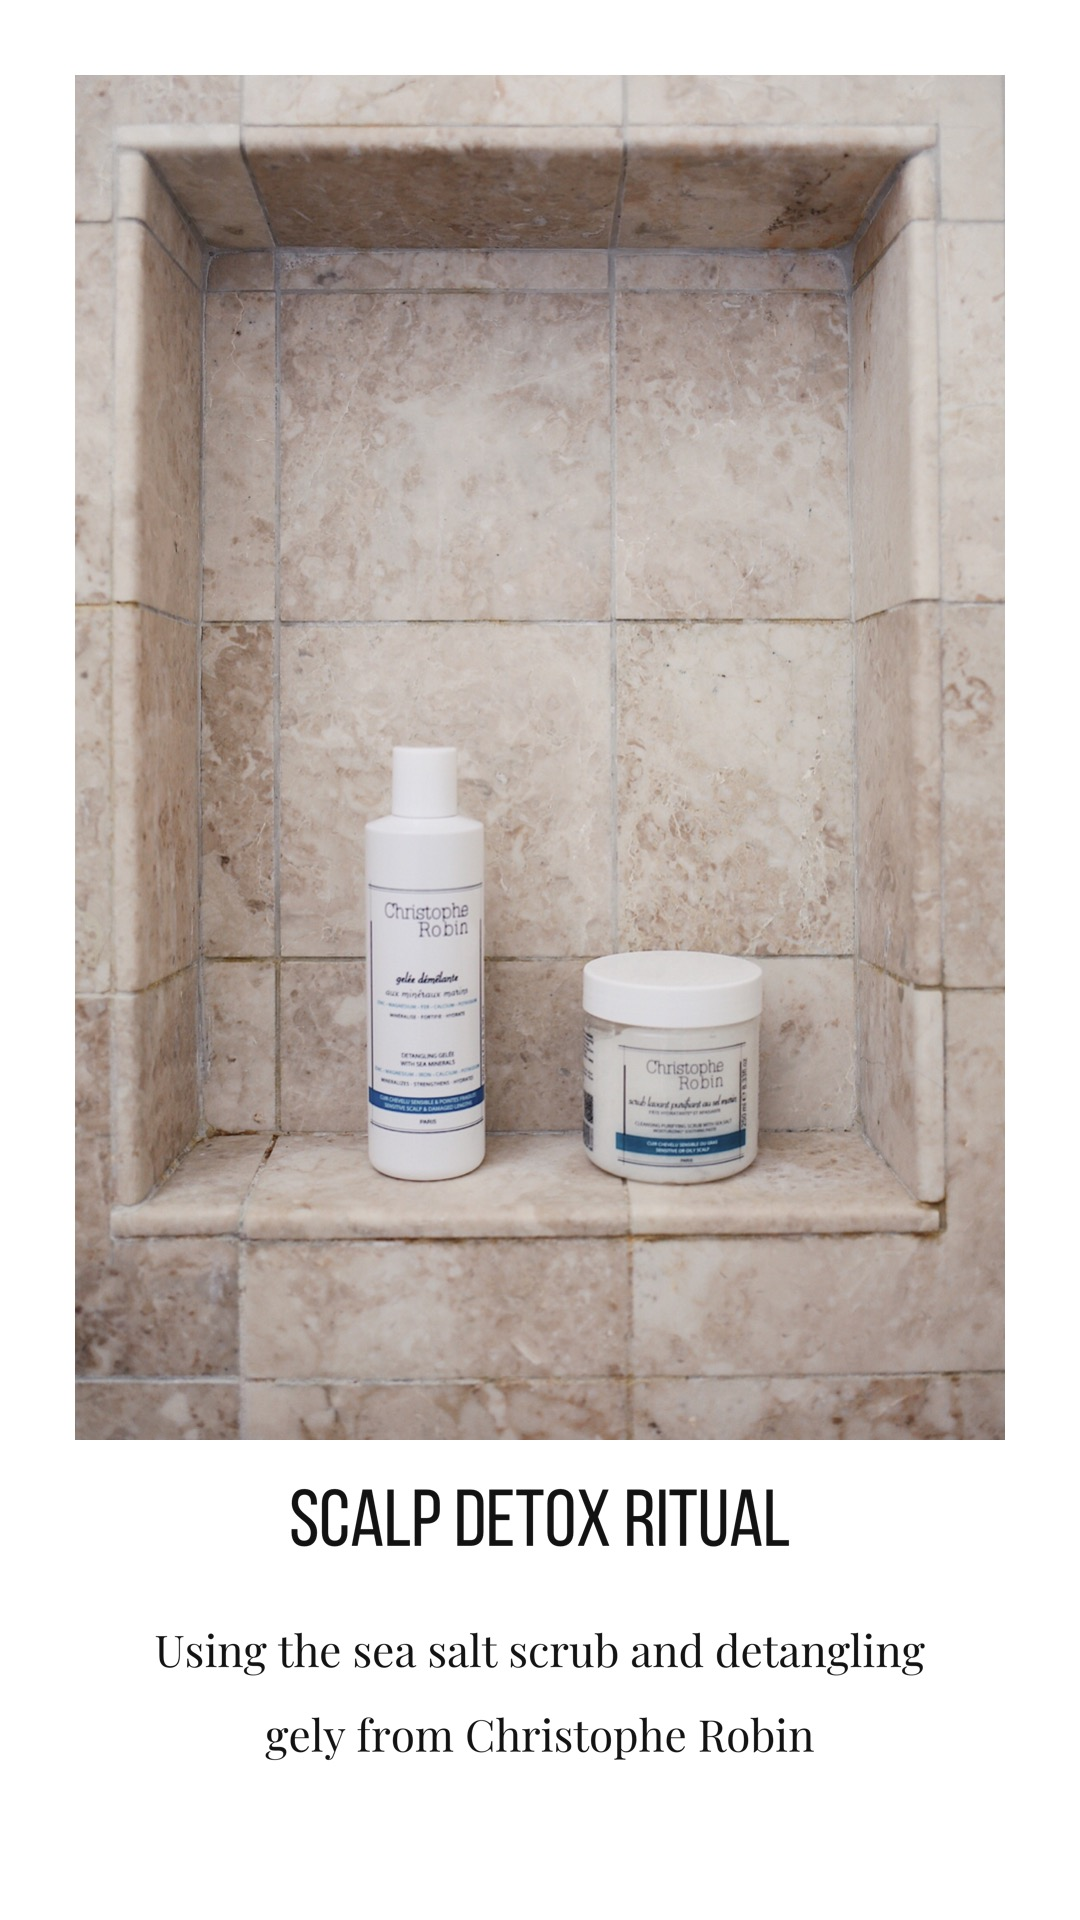 My Christophe Robin Scalp Detox Ritual with the purifying sea salt scrub and detangling gelee with sea minerals. Get all the details of my weekly hair ritual and 20% off and free shipping at ChristopheRobin.com with my discount code Julia20